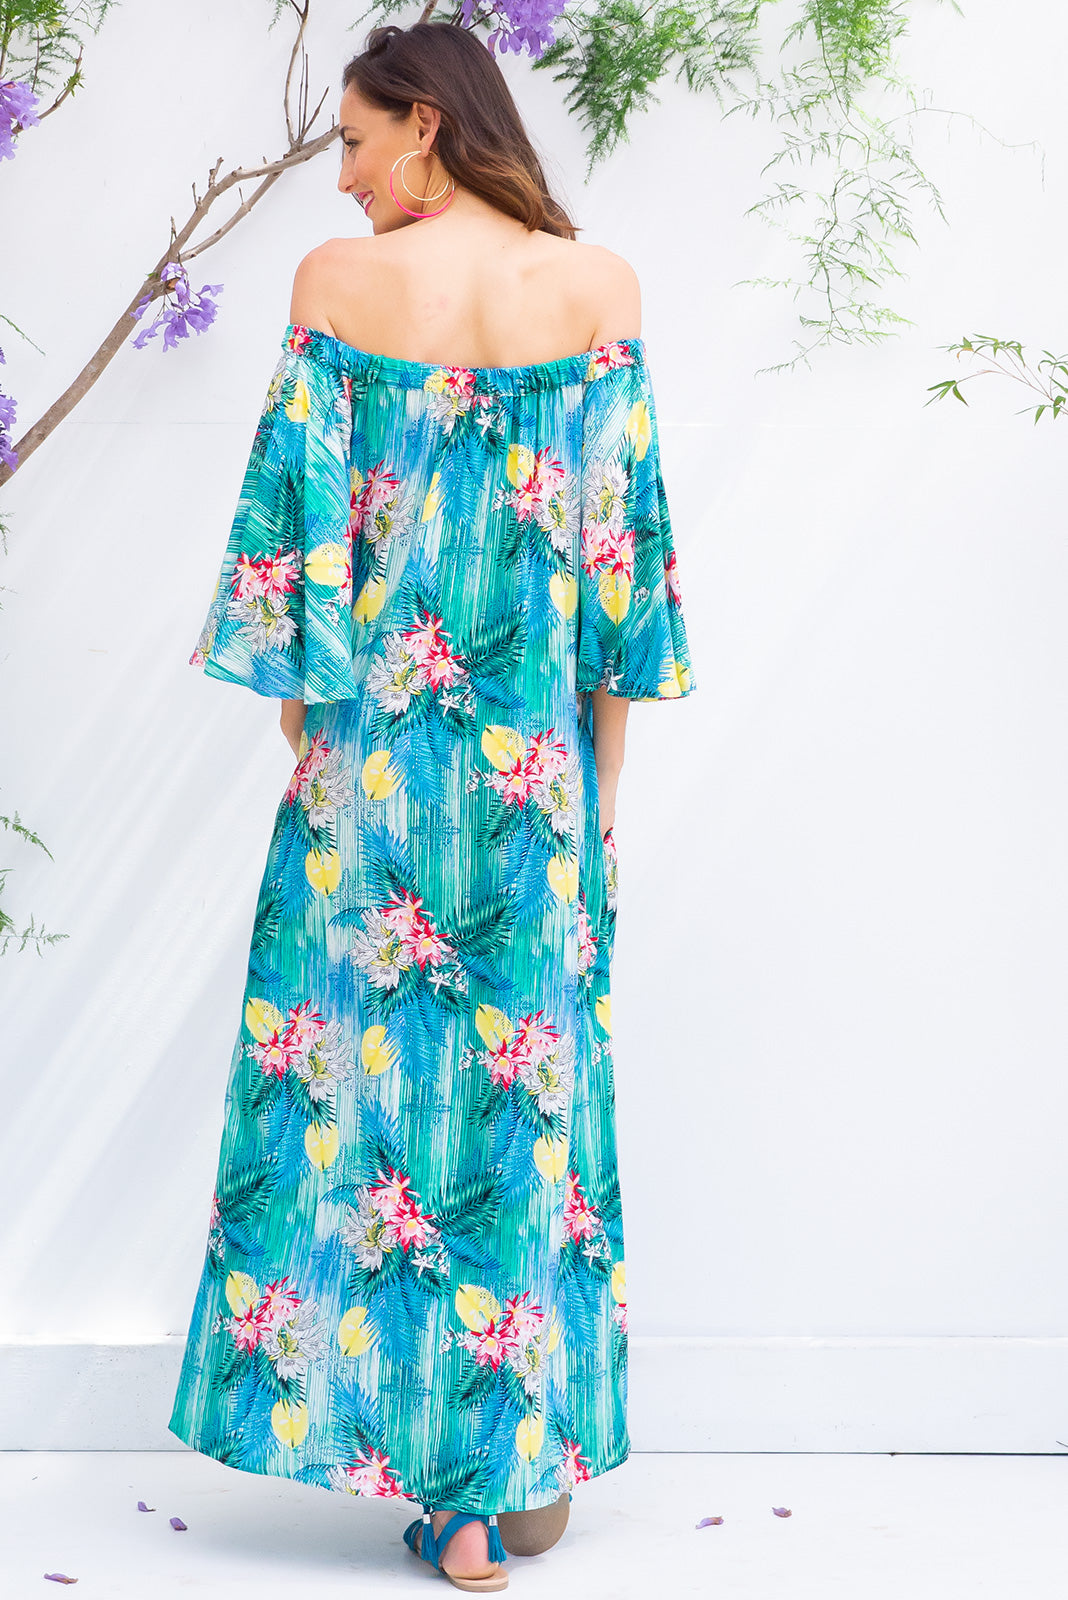 Mimosa Blue Waterfalls Maxi Dress off the shoulder soft fit maxi dress in a bright tropical inspired print on 100% rayon with side pockets